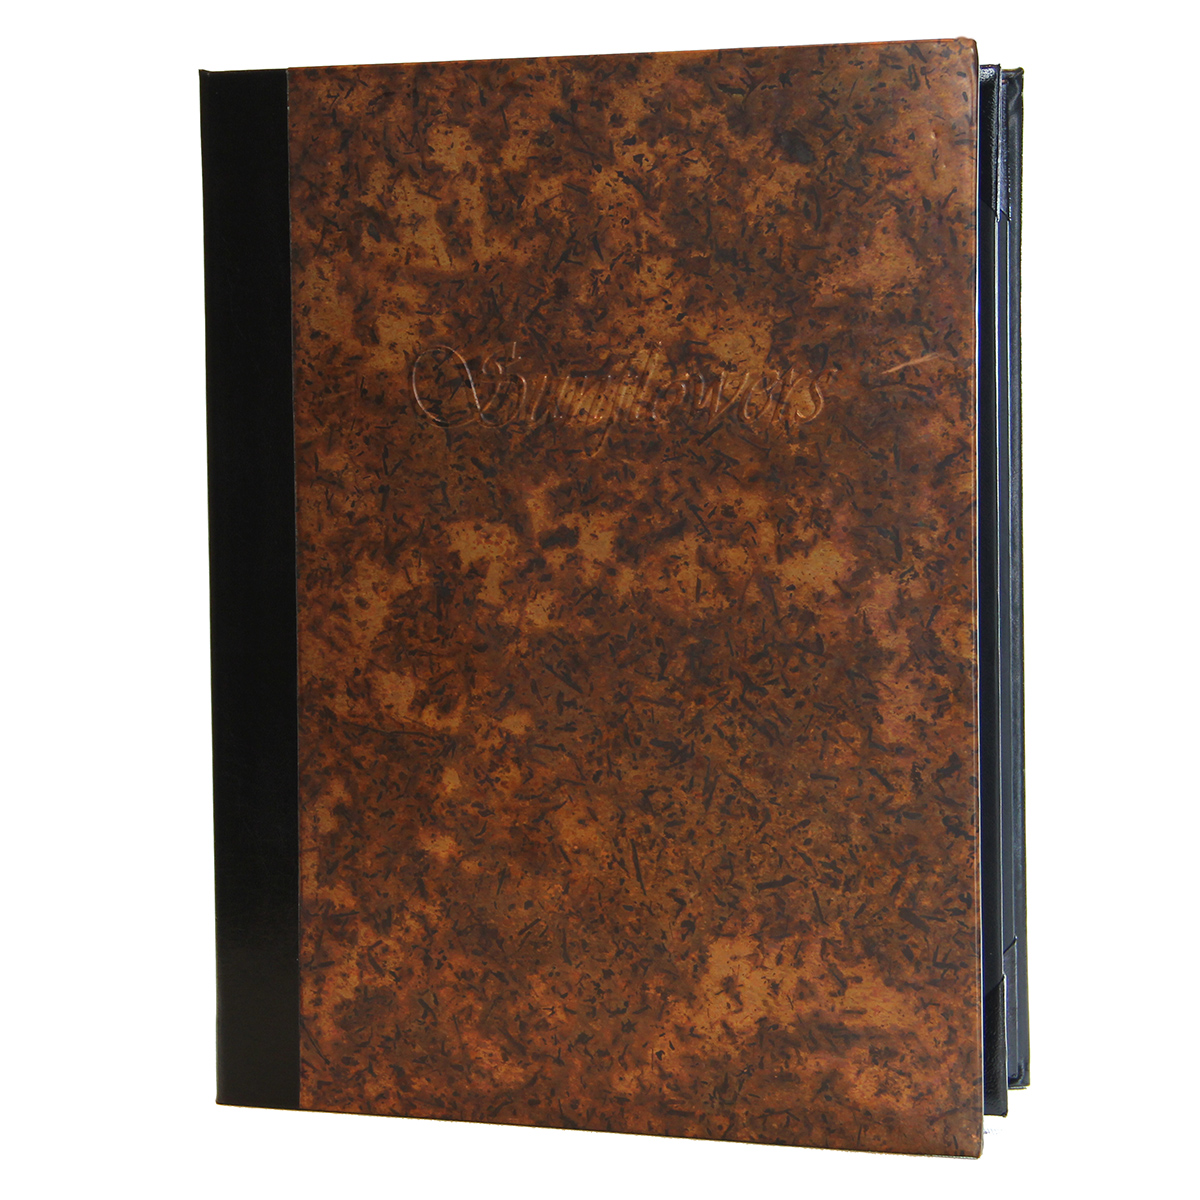 Aged Copper Two View Menu Cover 8.5x11 in distressed copper.